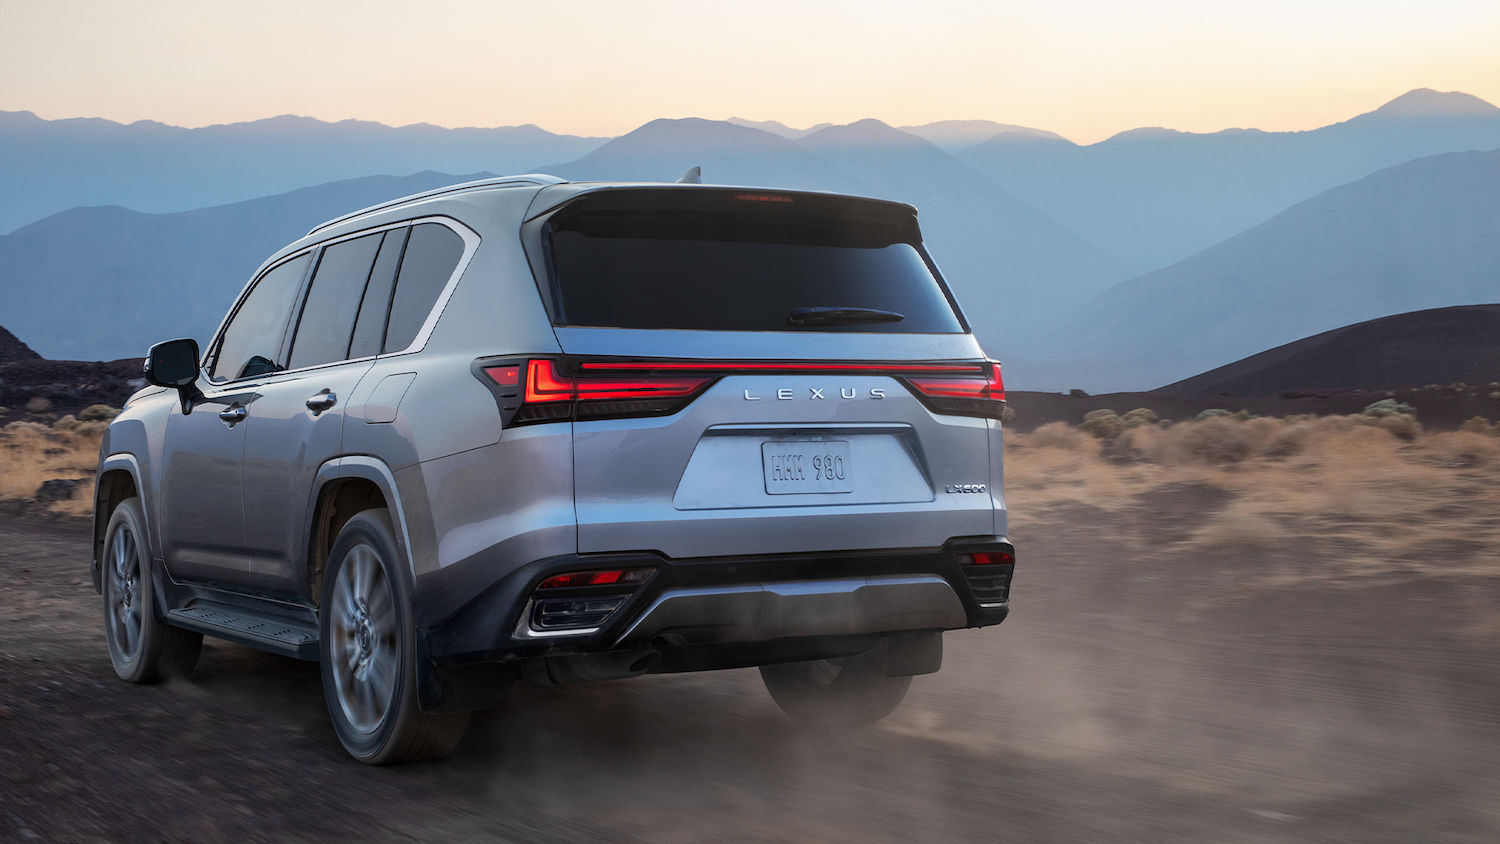 2022 Lexus LX 600 Interior. The 2022 Lexus LX 600 improves on the outgoing SUV's power, efficiency, and off-road abilities--thanks to a Toyota Tundra drivetrain.  | Lexus